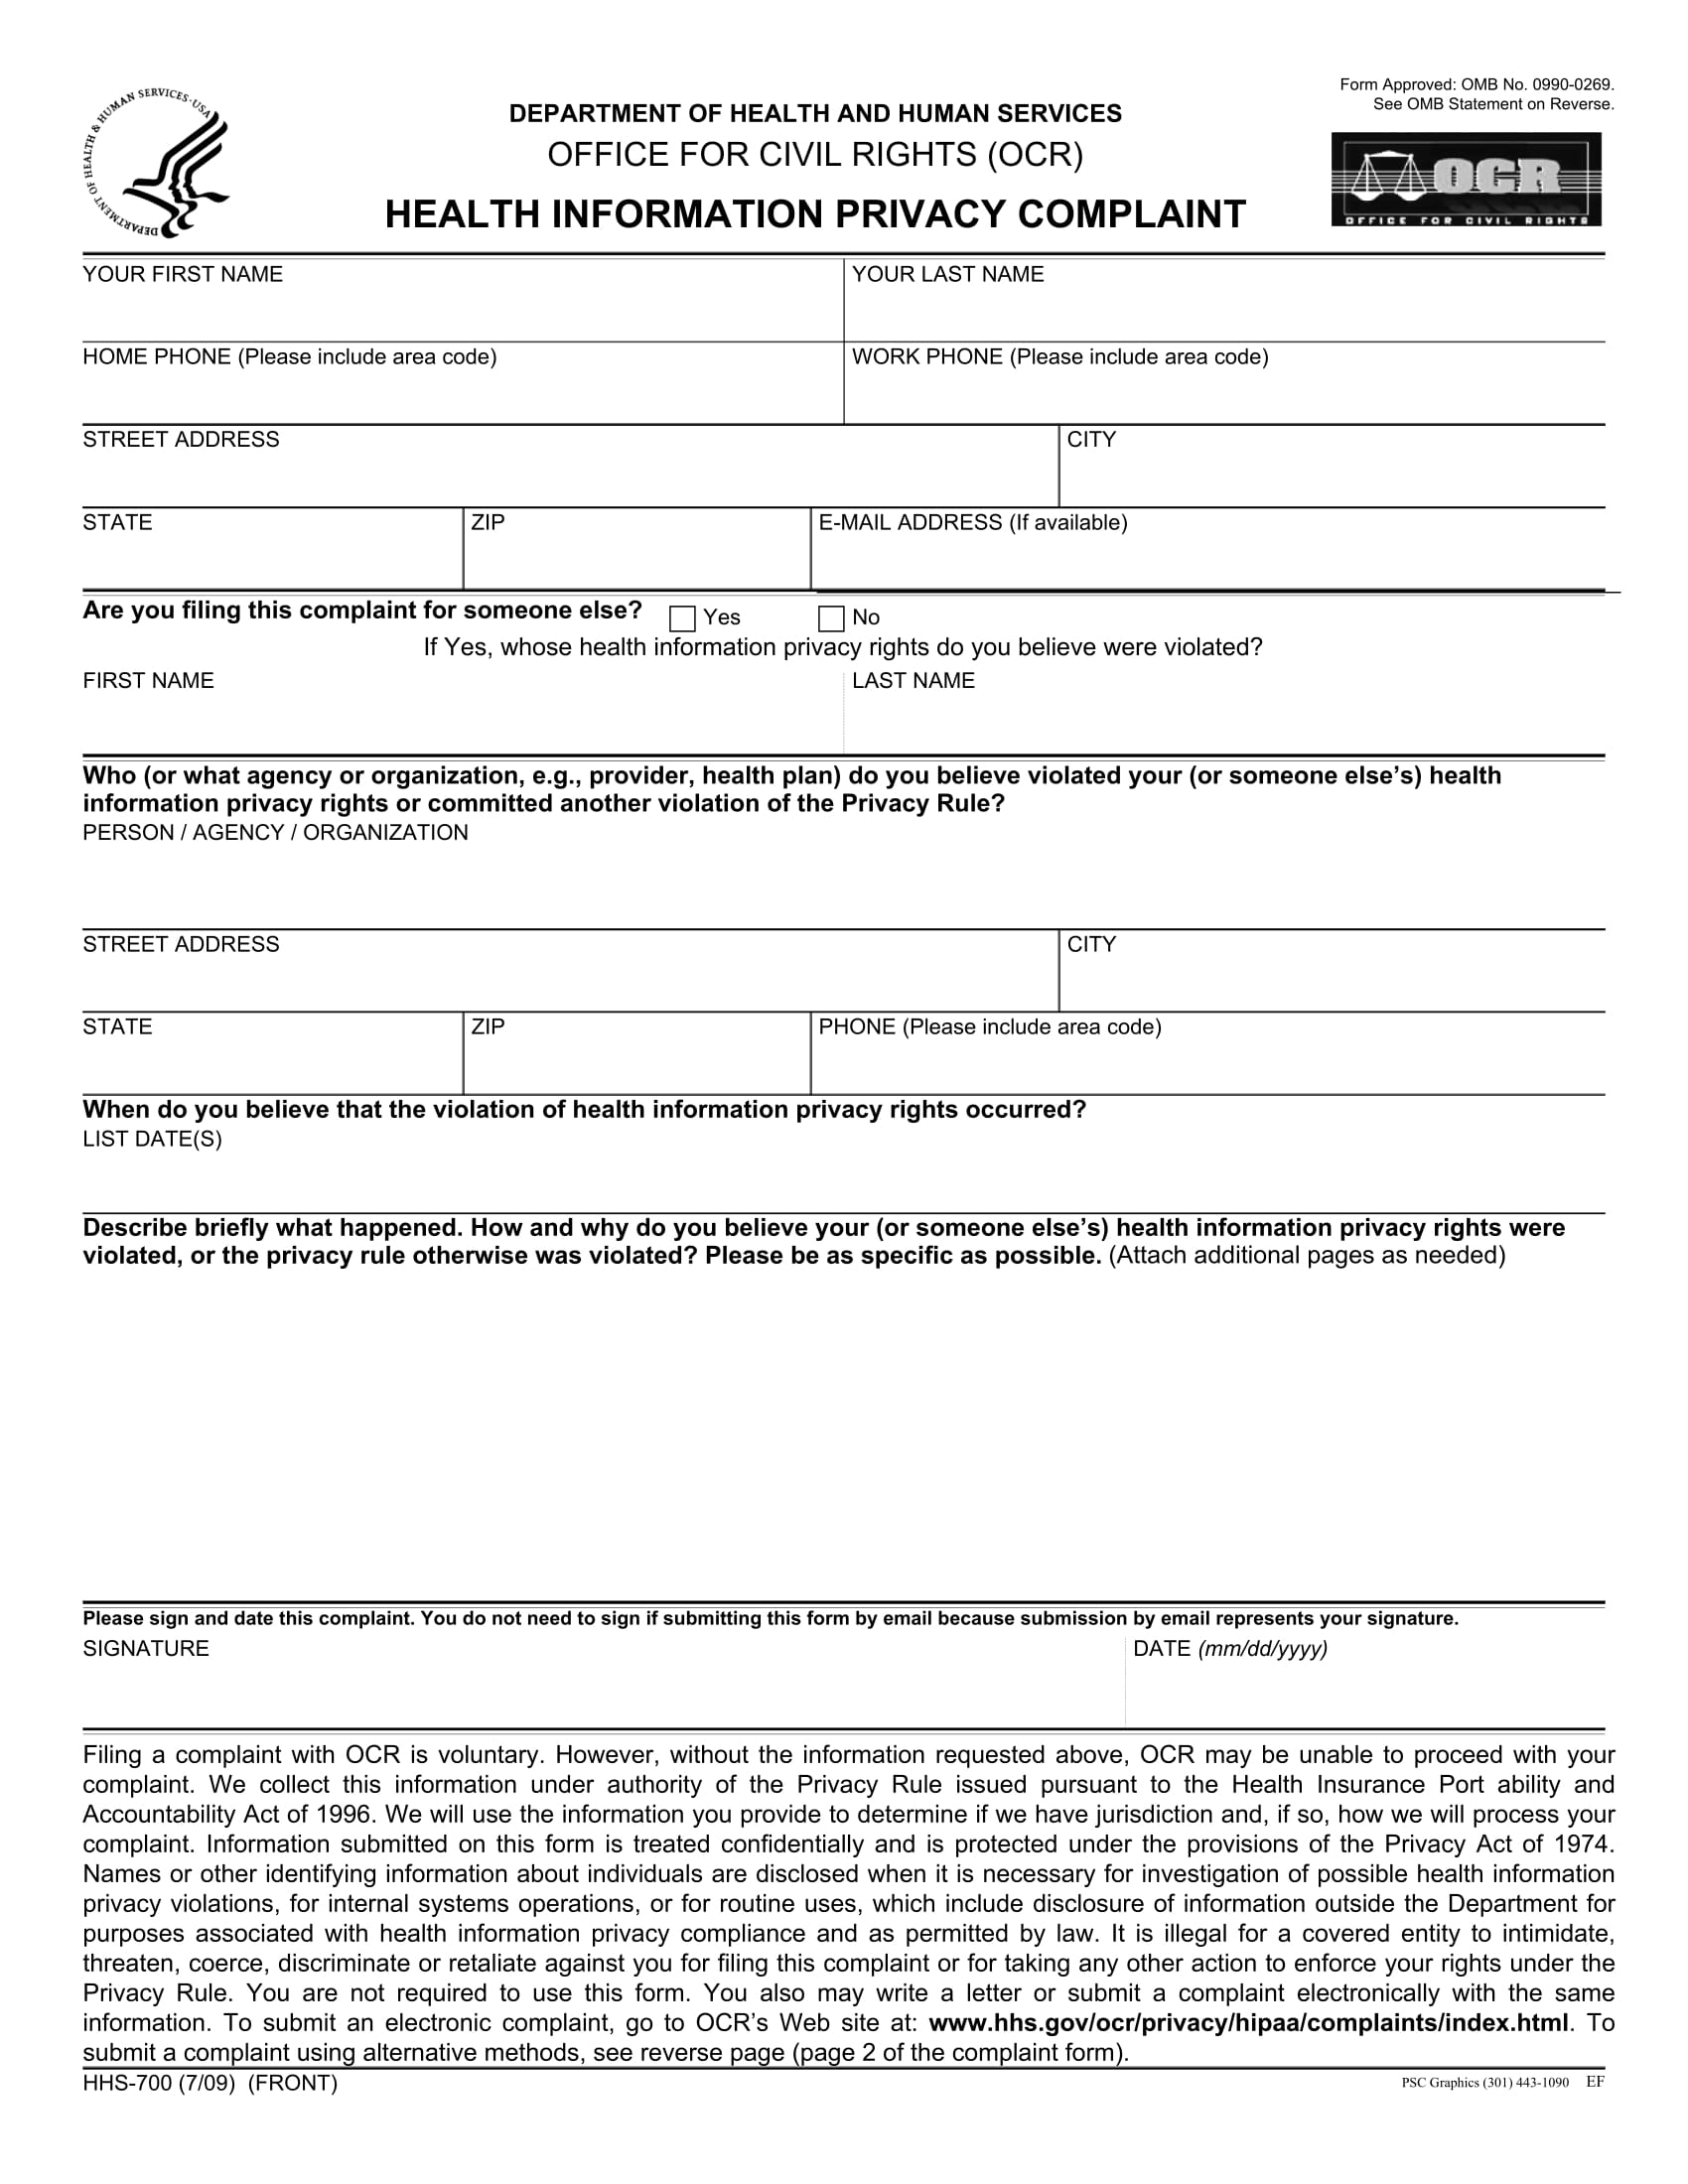 health information privacy complaint form 11